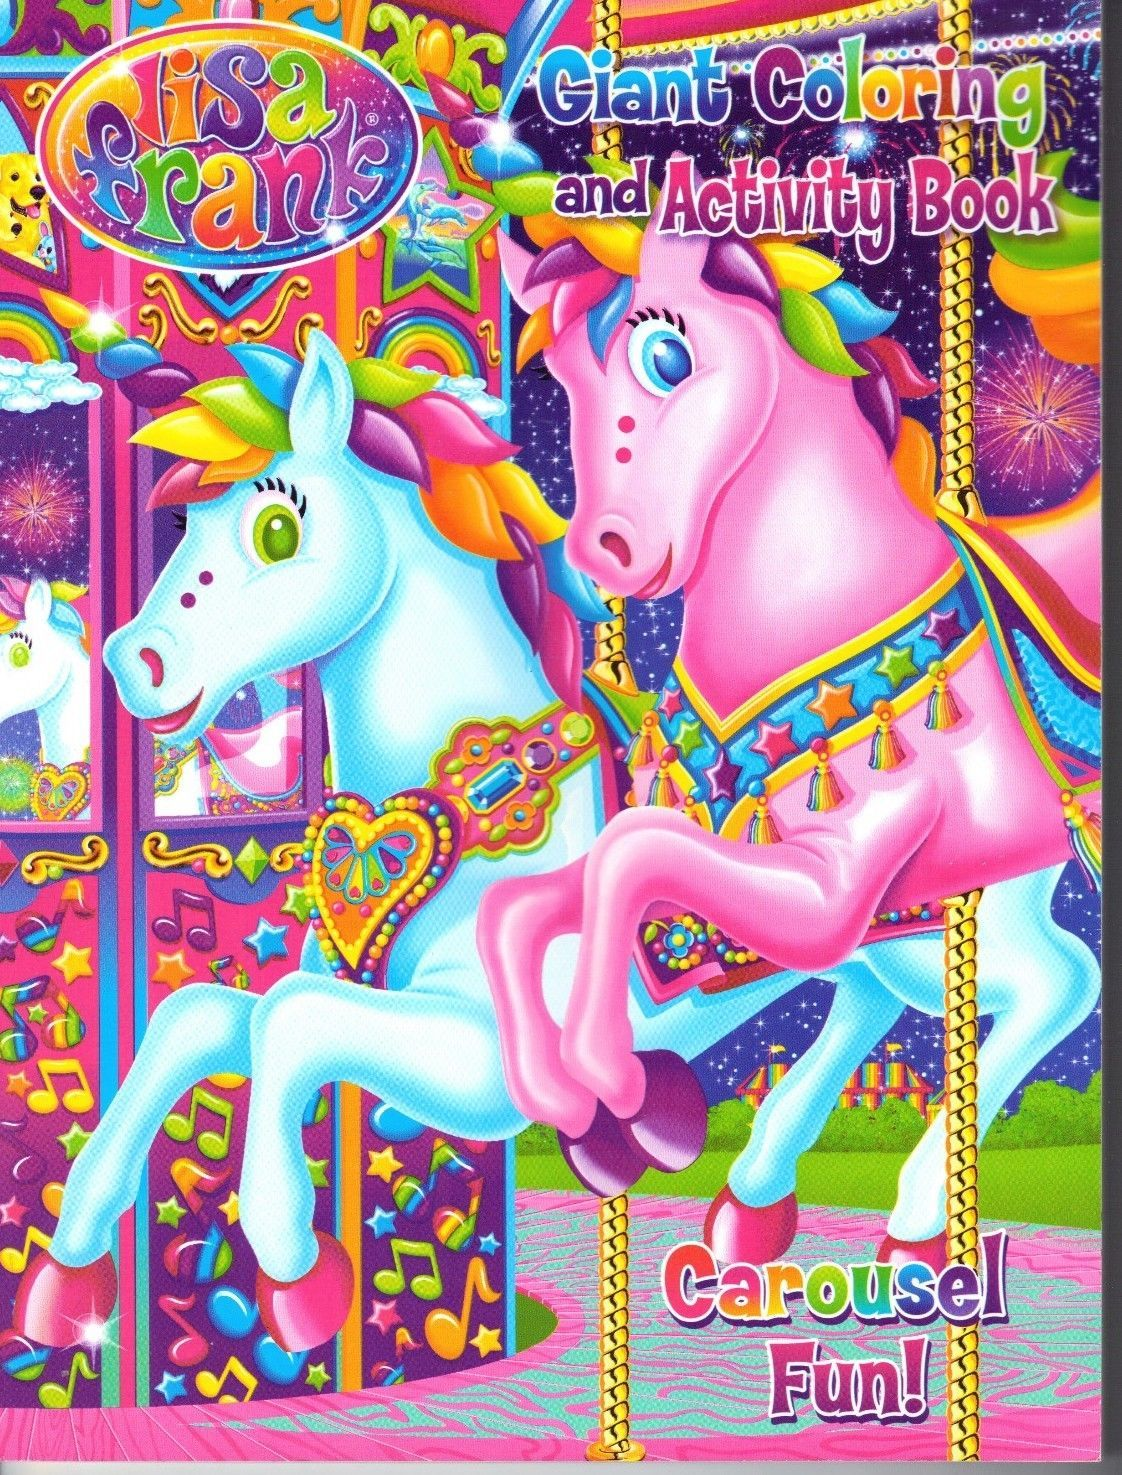 furthermore 1433779028 4 together with  moreover lisa bratz together with lisa franks 2 horses 4 in addition  together with  additionally evolution lisa frank large msg 135050273174 together with  in addition  also . on lisa frank coloring pages